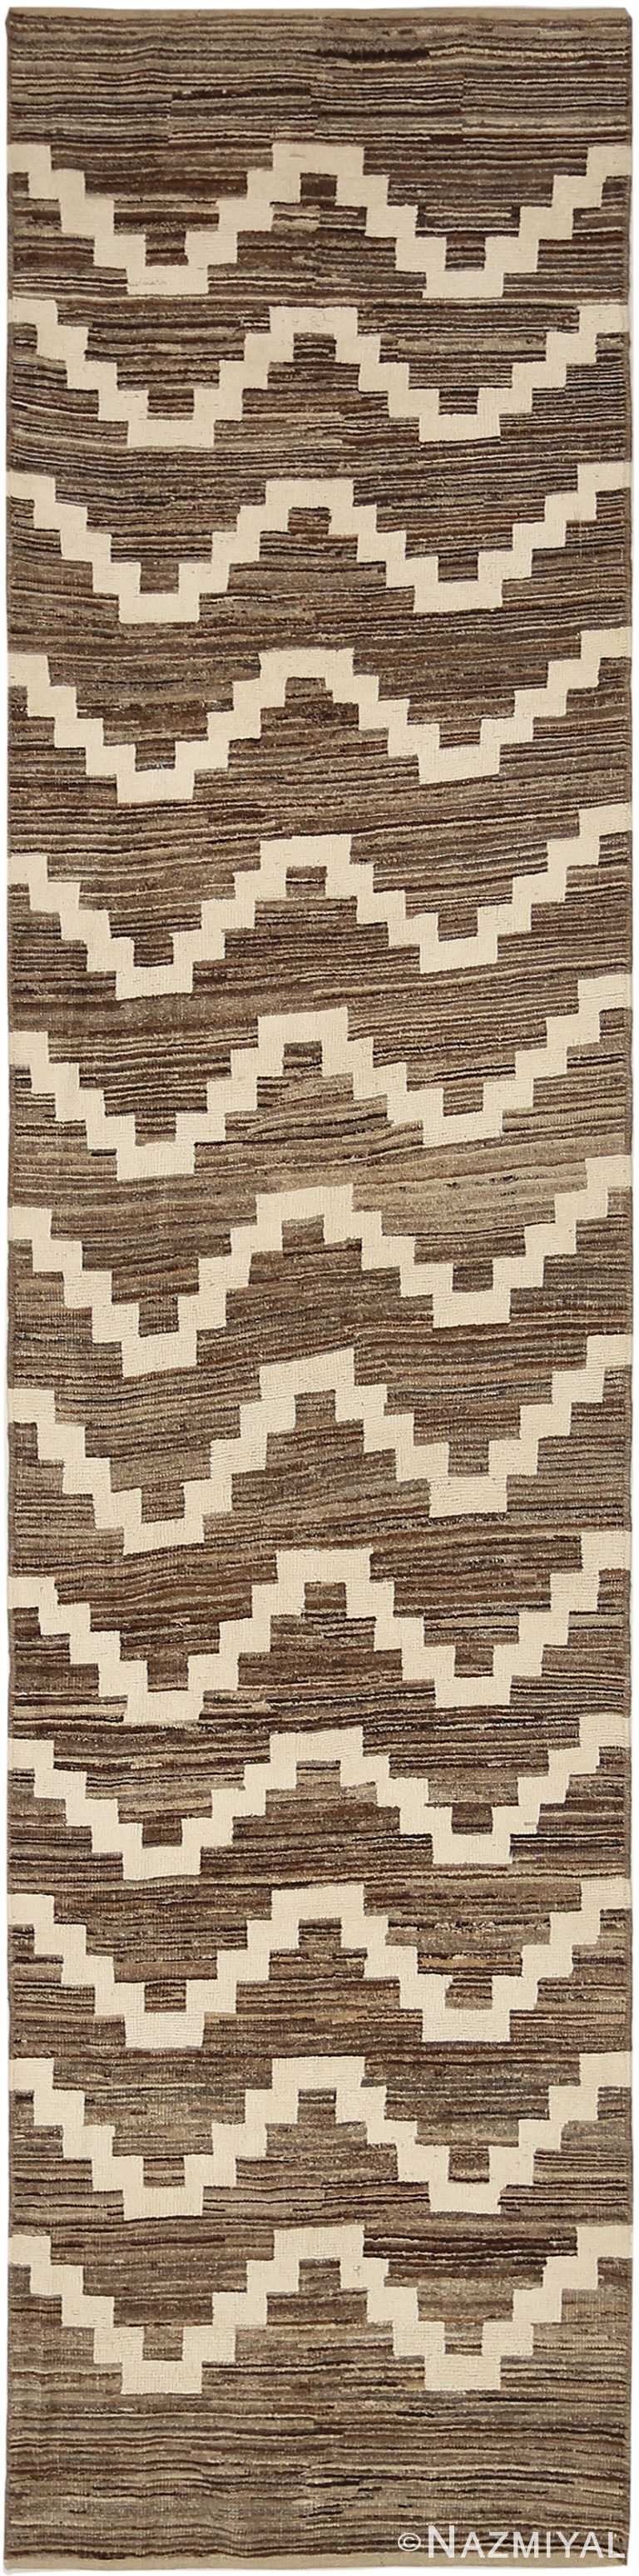 Brown Berber Design Modern Moroccan Style Runner Rug 60334 by Nazmiyal NYC